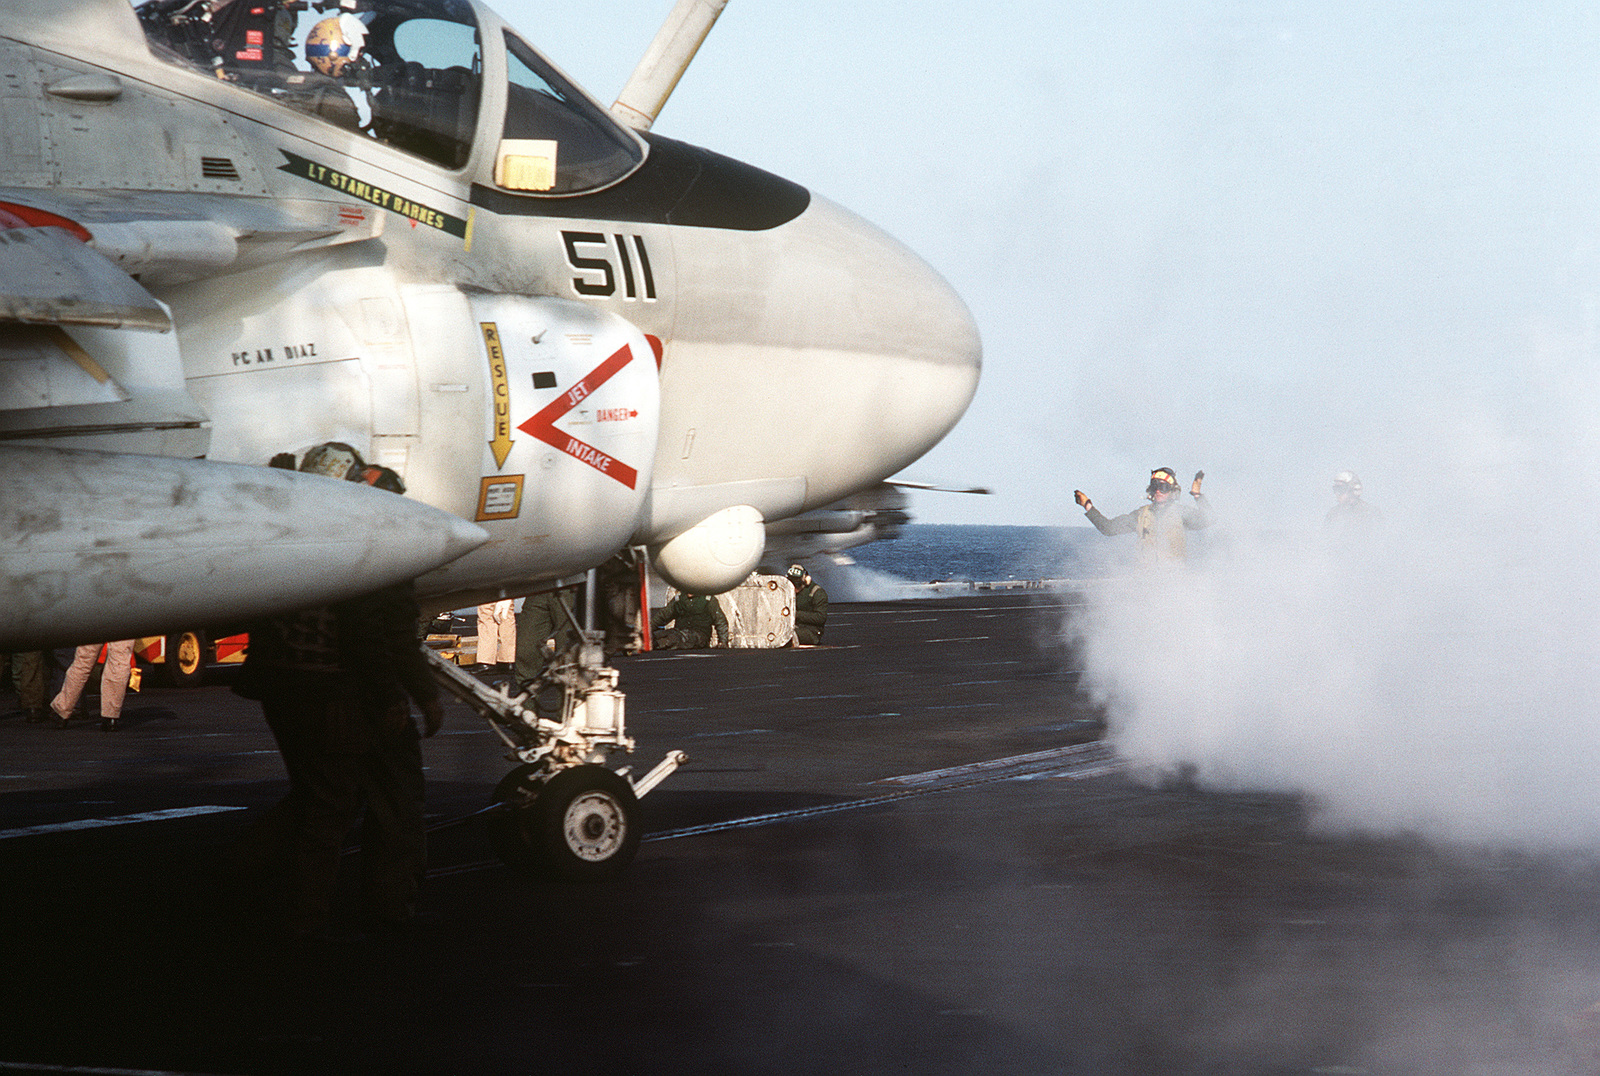 An A-6E Intruder aircraft is positioned on a catapult during flight operations aboard the aircraft carrier USS MIDWAY (CV 41)